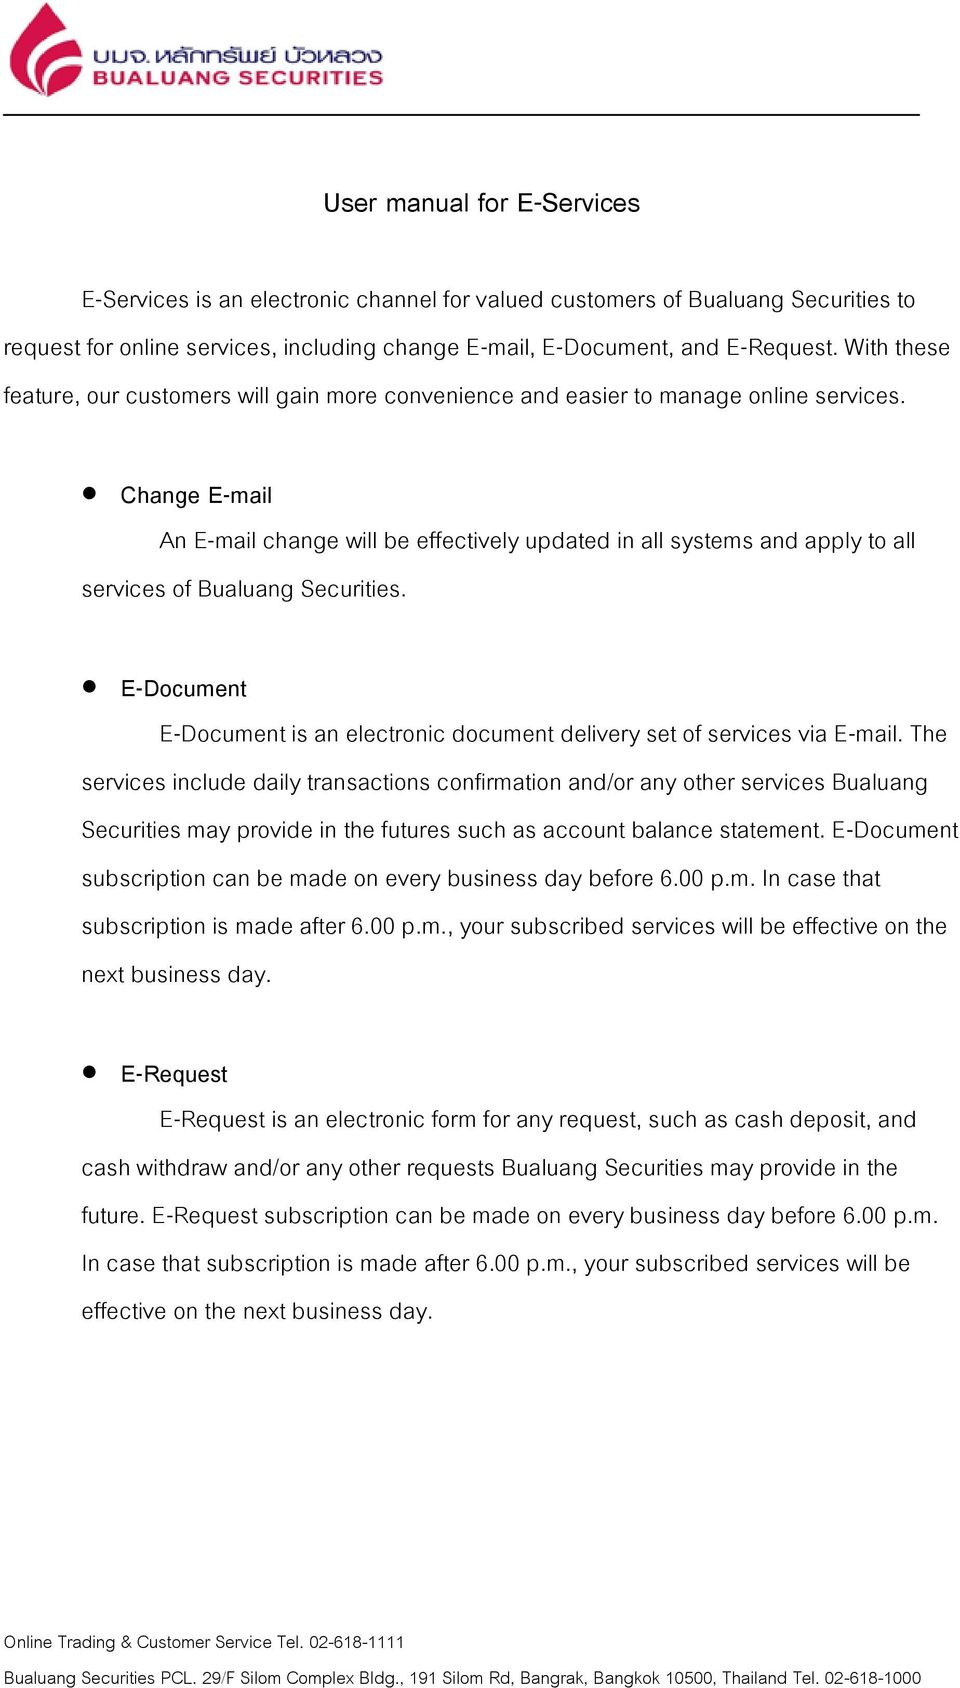 User manual for e services pdf for Electronic document delivery service